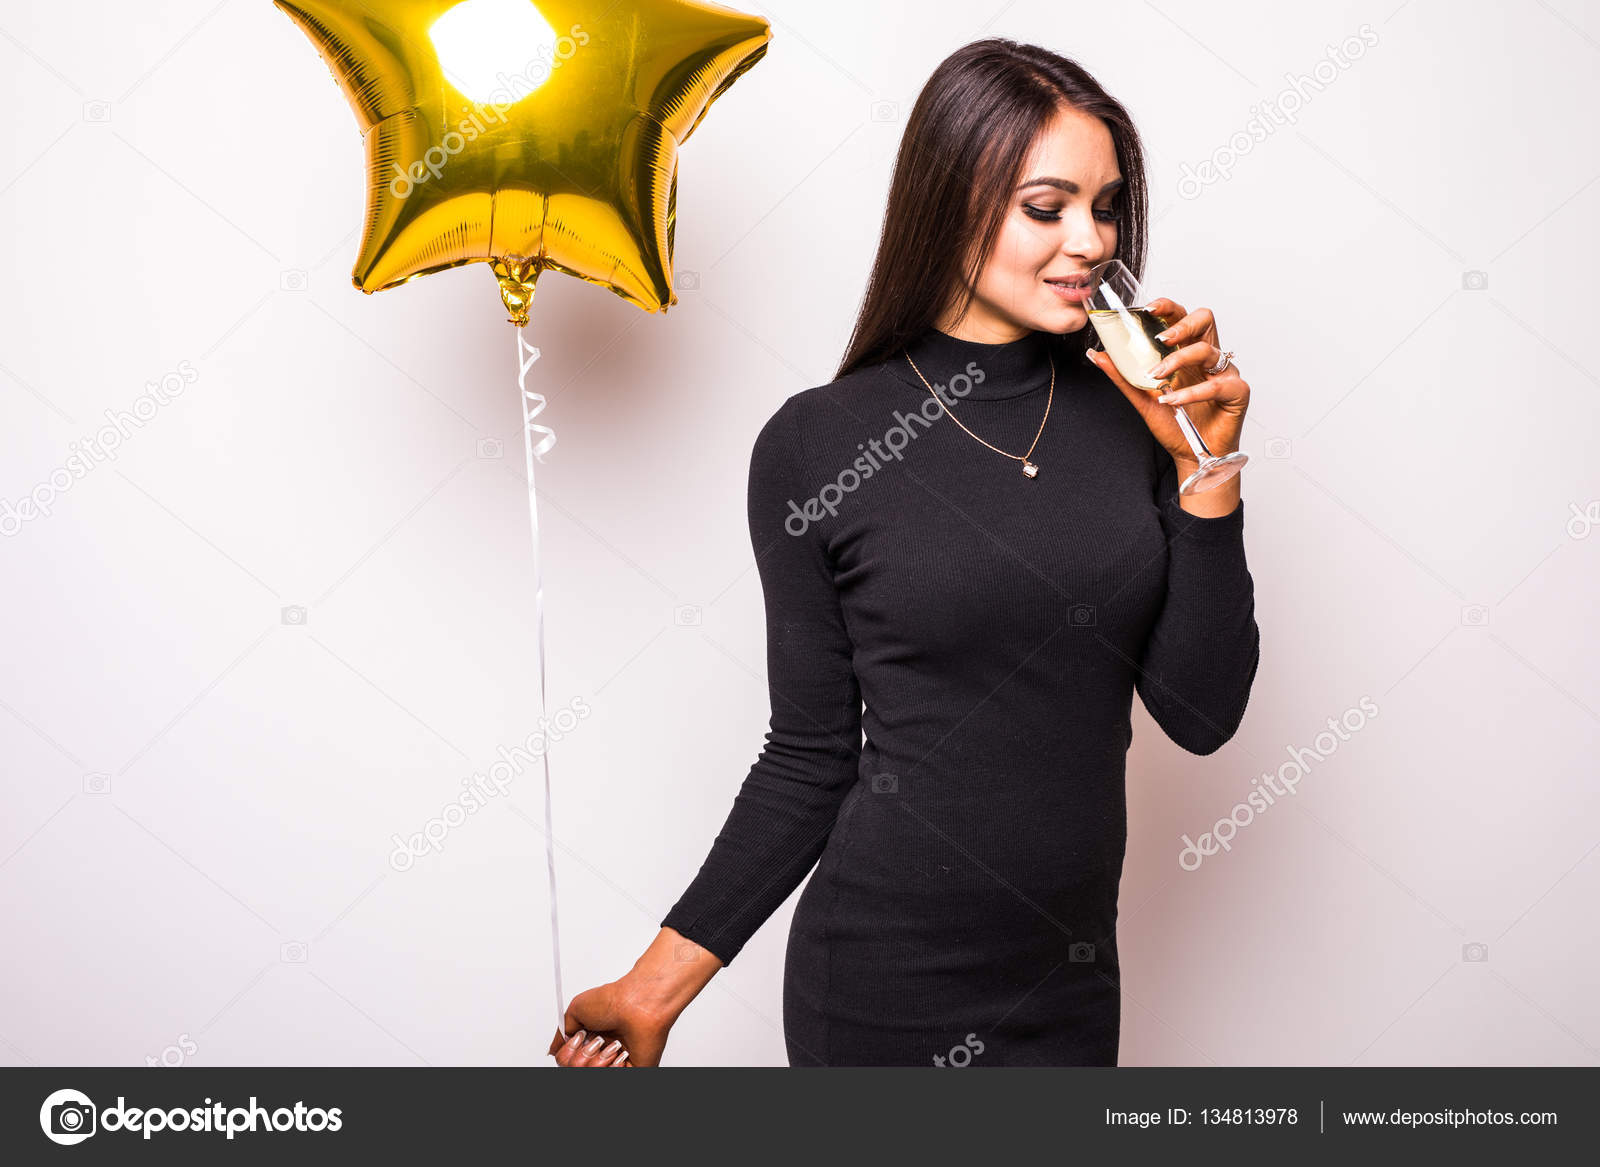 2ecd8a01a416 Pretty young woman in black dress with gold star shaped balloon smiling and drinking  champagne over white background — Photo by dan.grytsku.gmail.com| ...